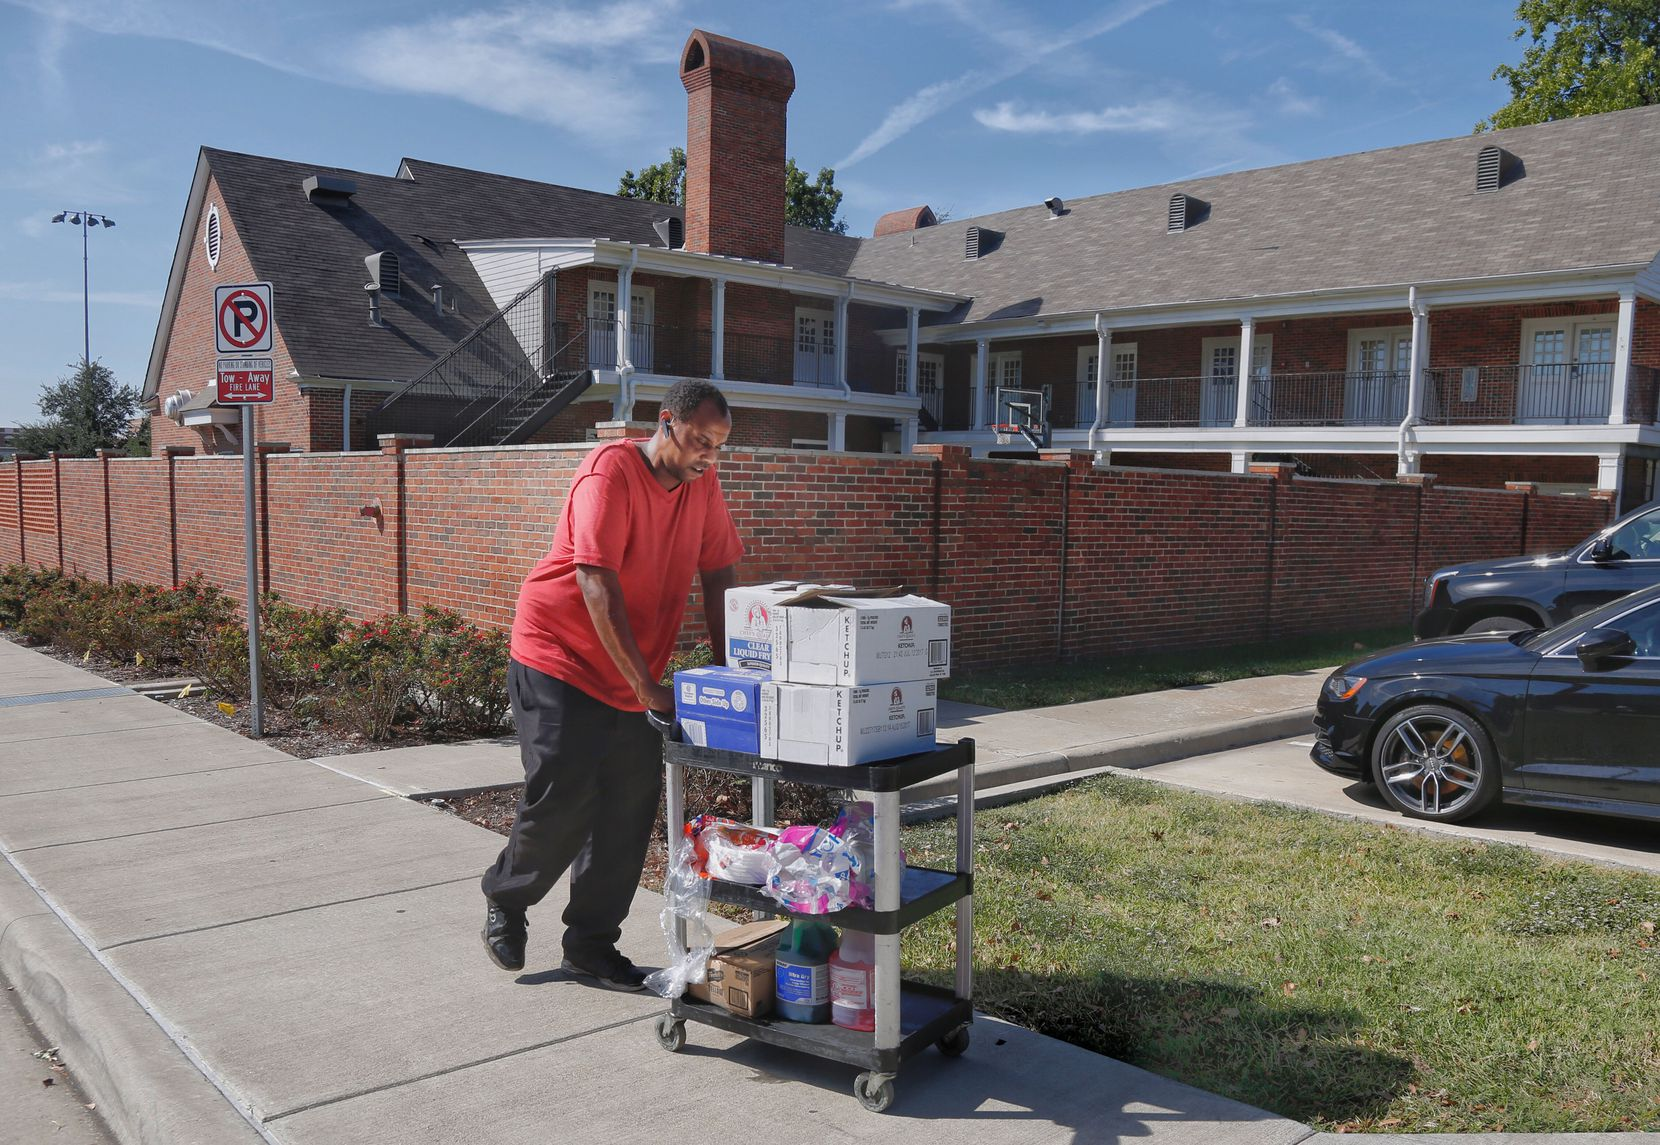 A worker who asked not to be identified removes food items from the Kappa Alpha house on the SMU campus in Dallas, Texas Thursday October 6, 2017.